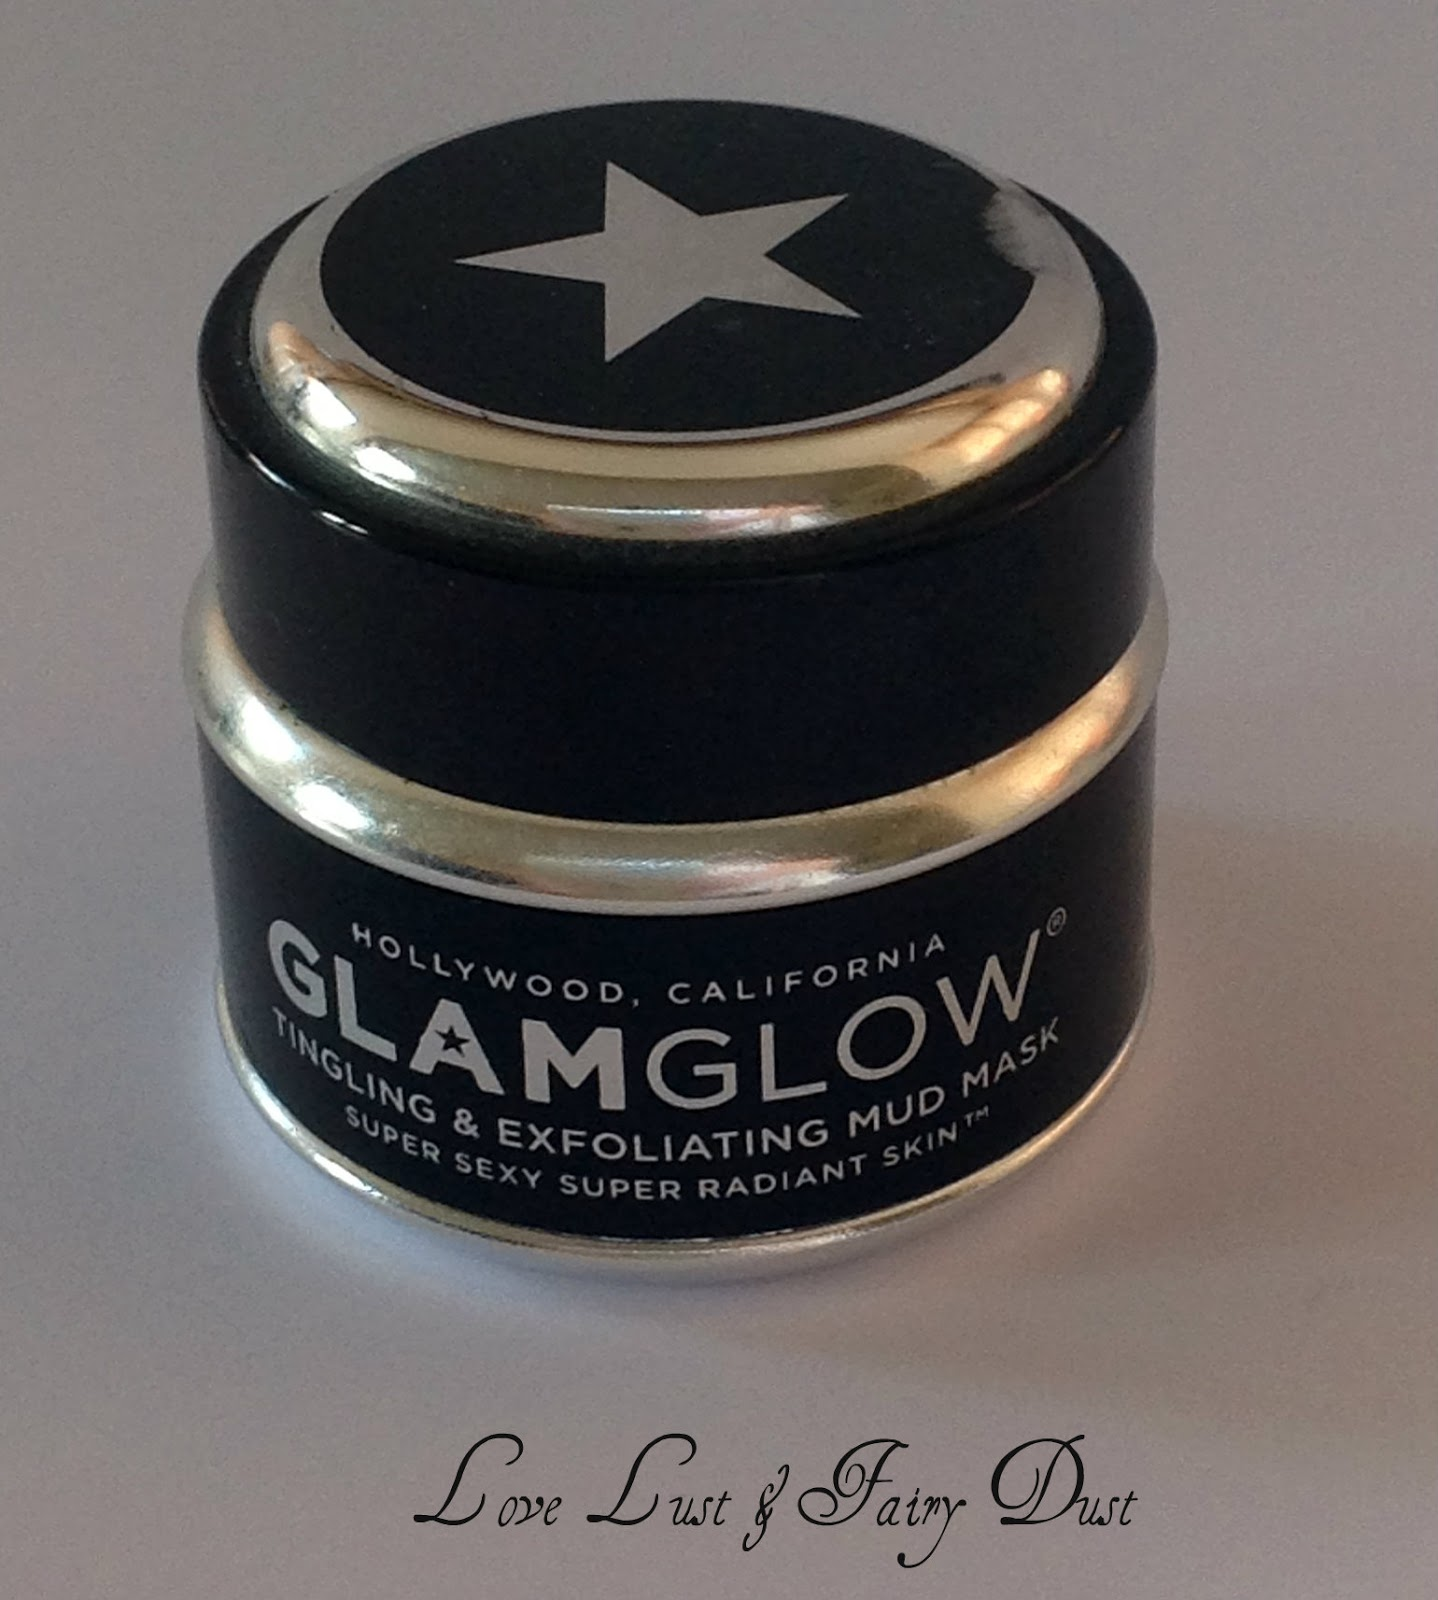 GlamGlow Exfoliating Mud Mask review